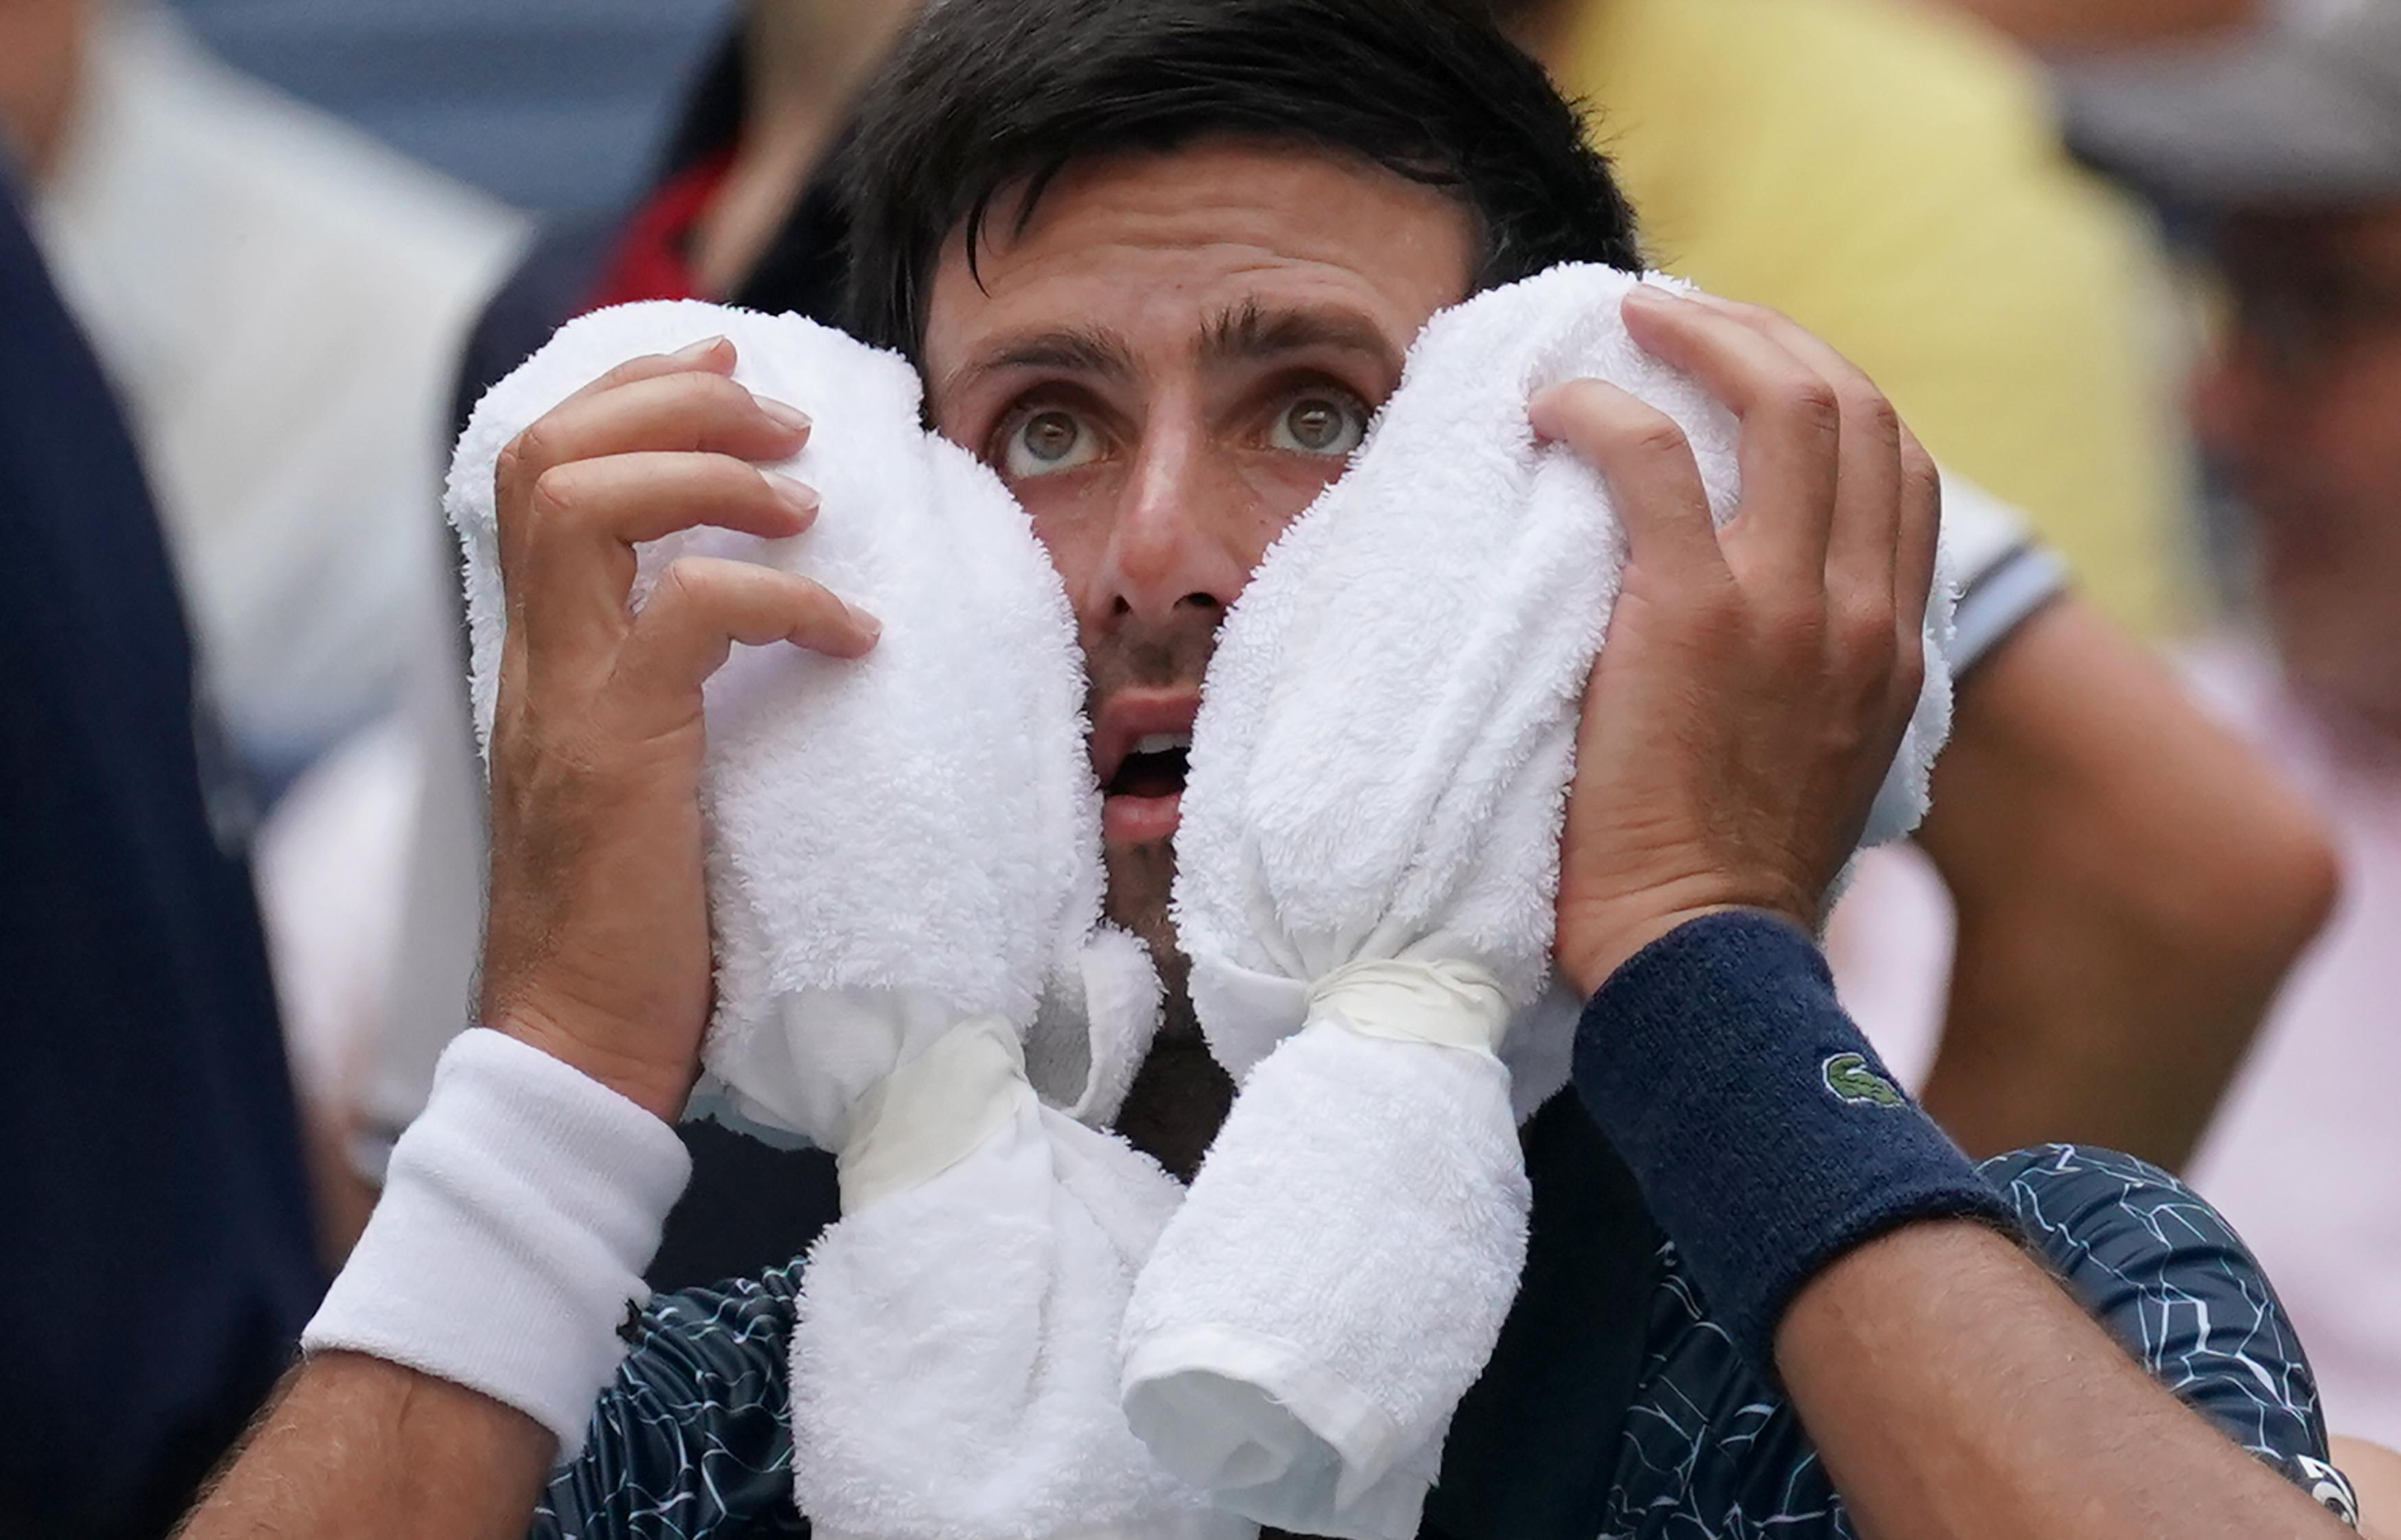 Novak Djokovic suffered with the heat in New York with temperatures touching 40 Celsius